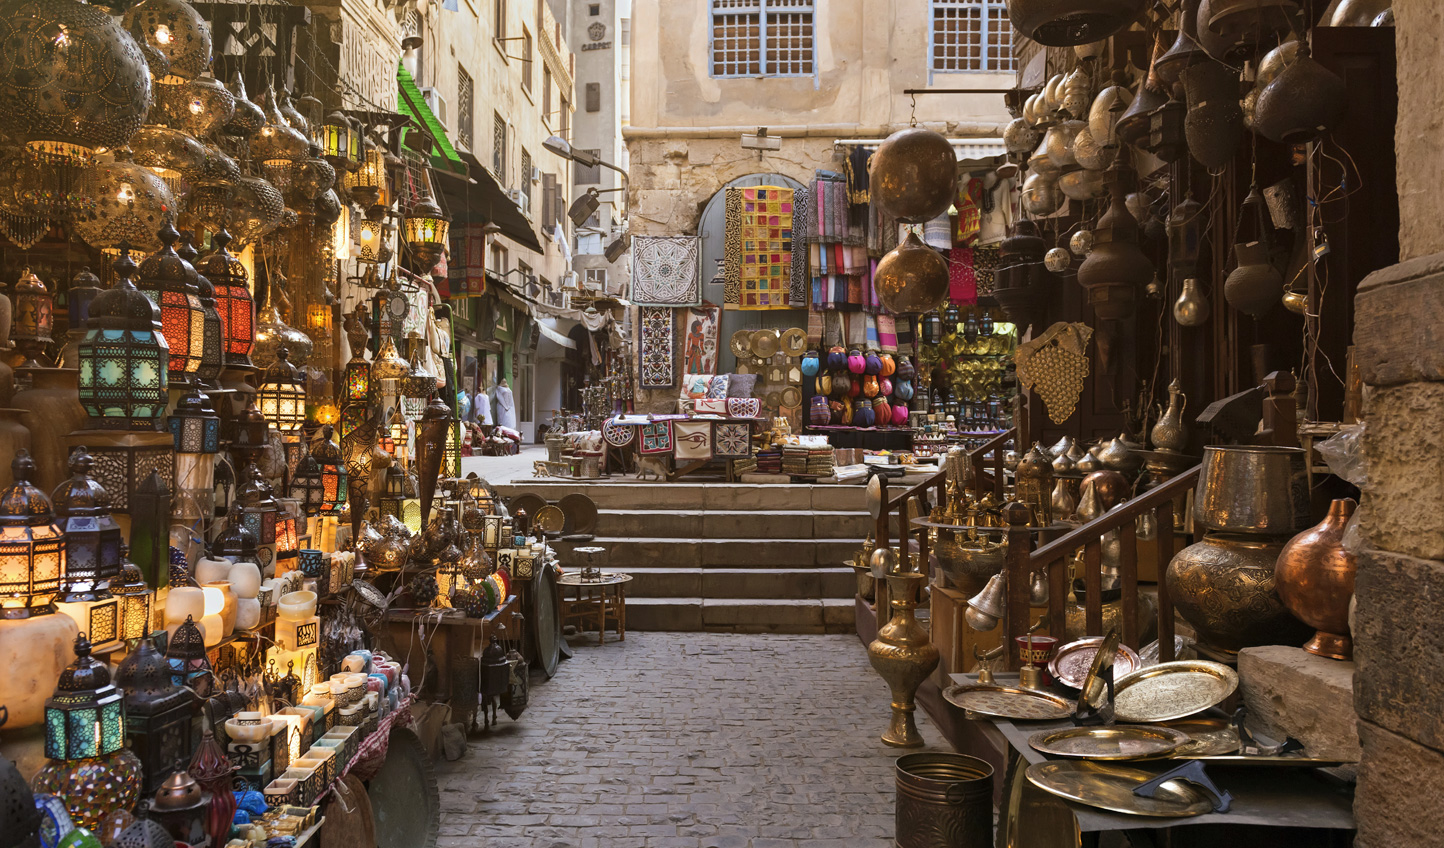 Meet up with master craftsmen in Khan al Khalili Market